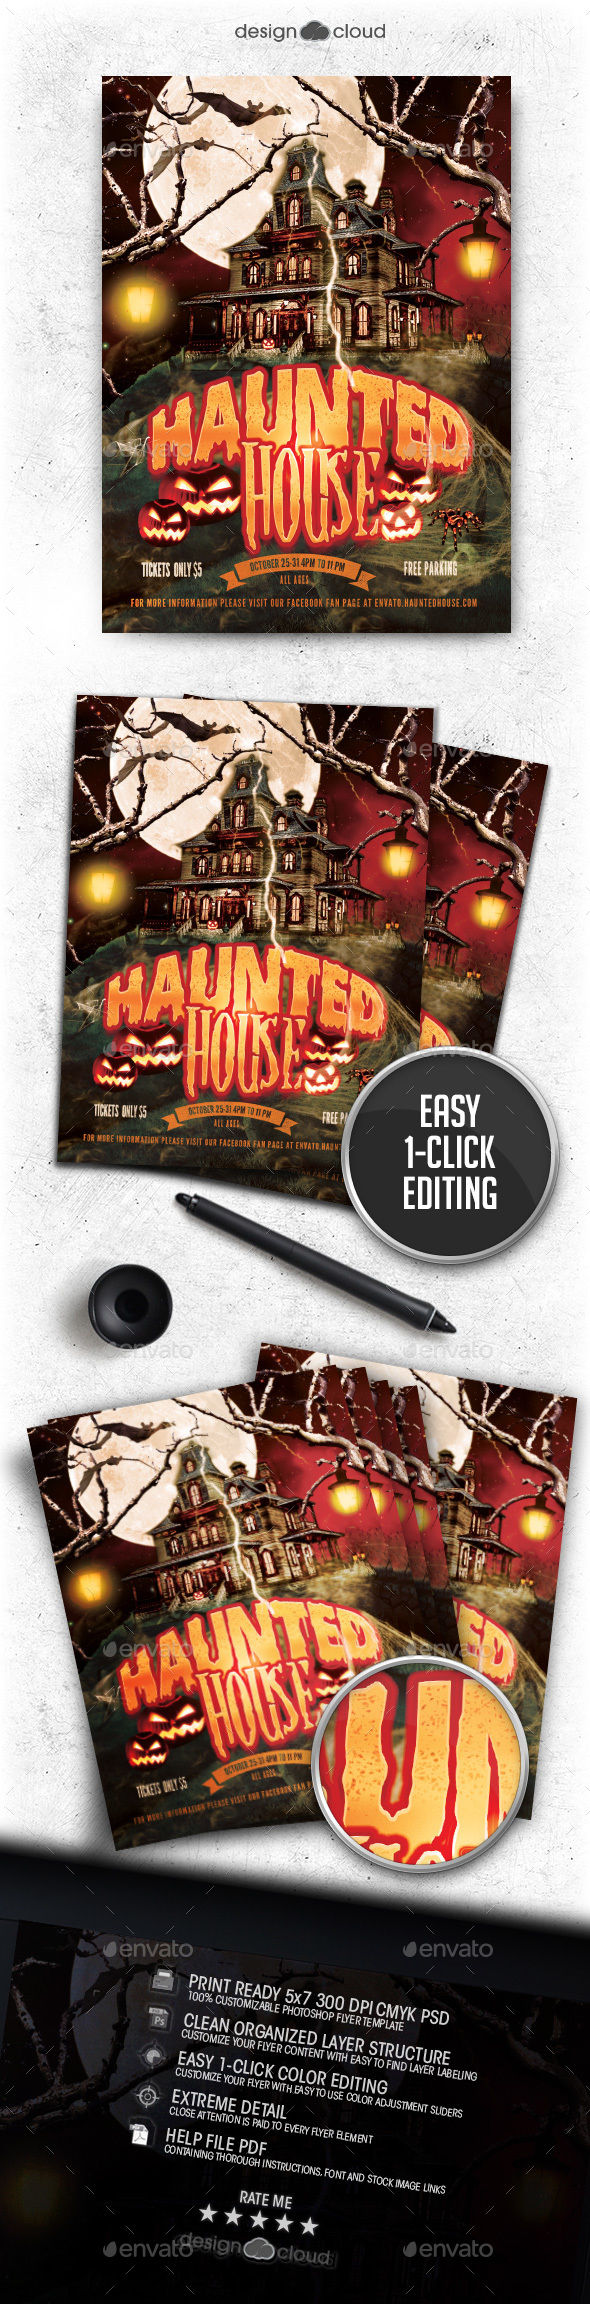 Haunted House Flyer Template by Design-Cloud (Halloween party flyer)